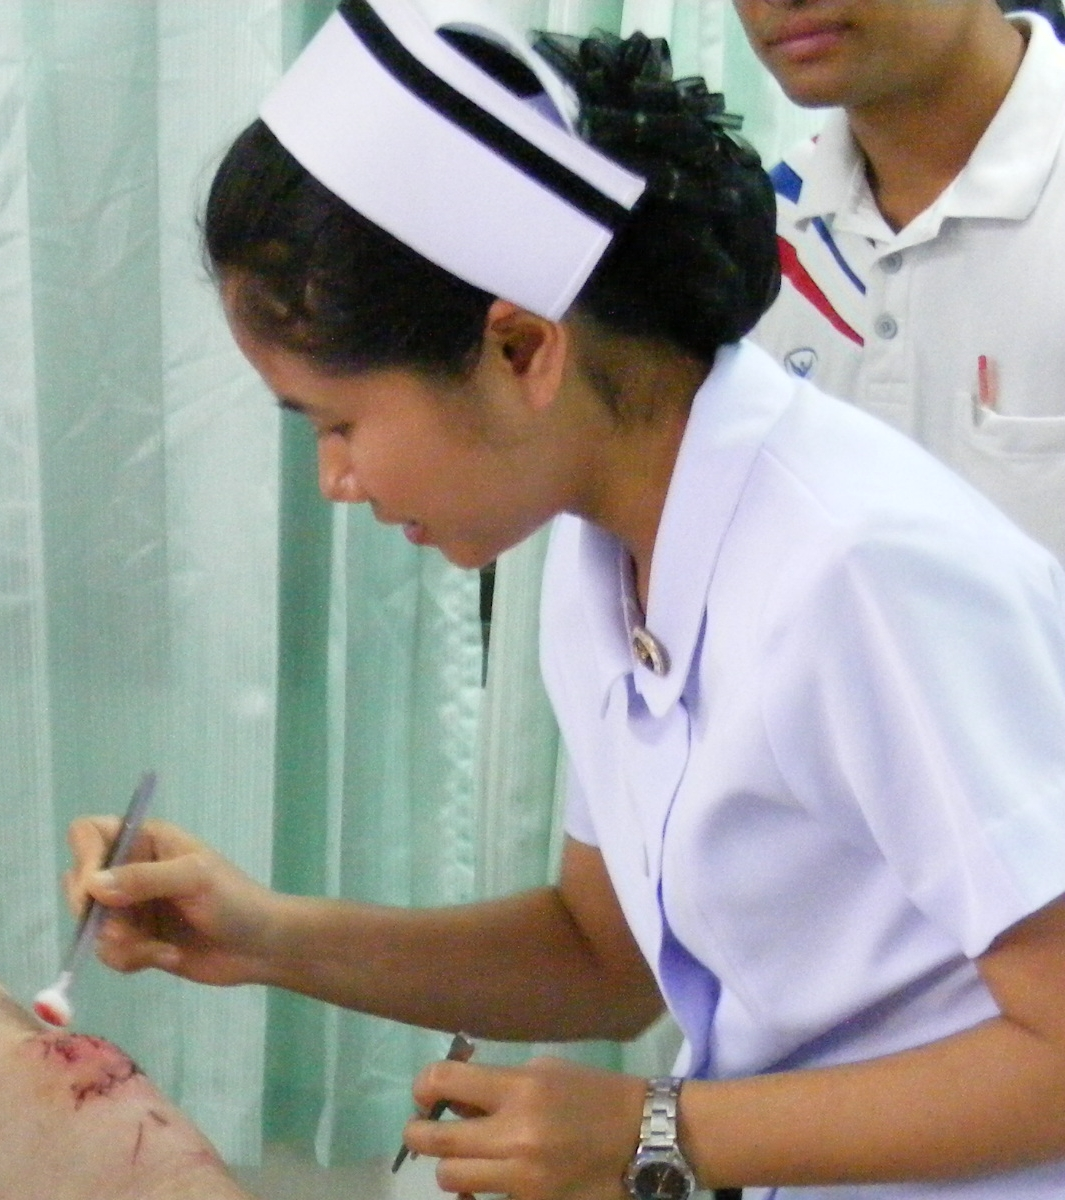 Gaining Valuable Experience as a Nurse